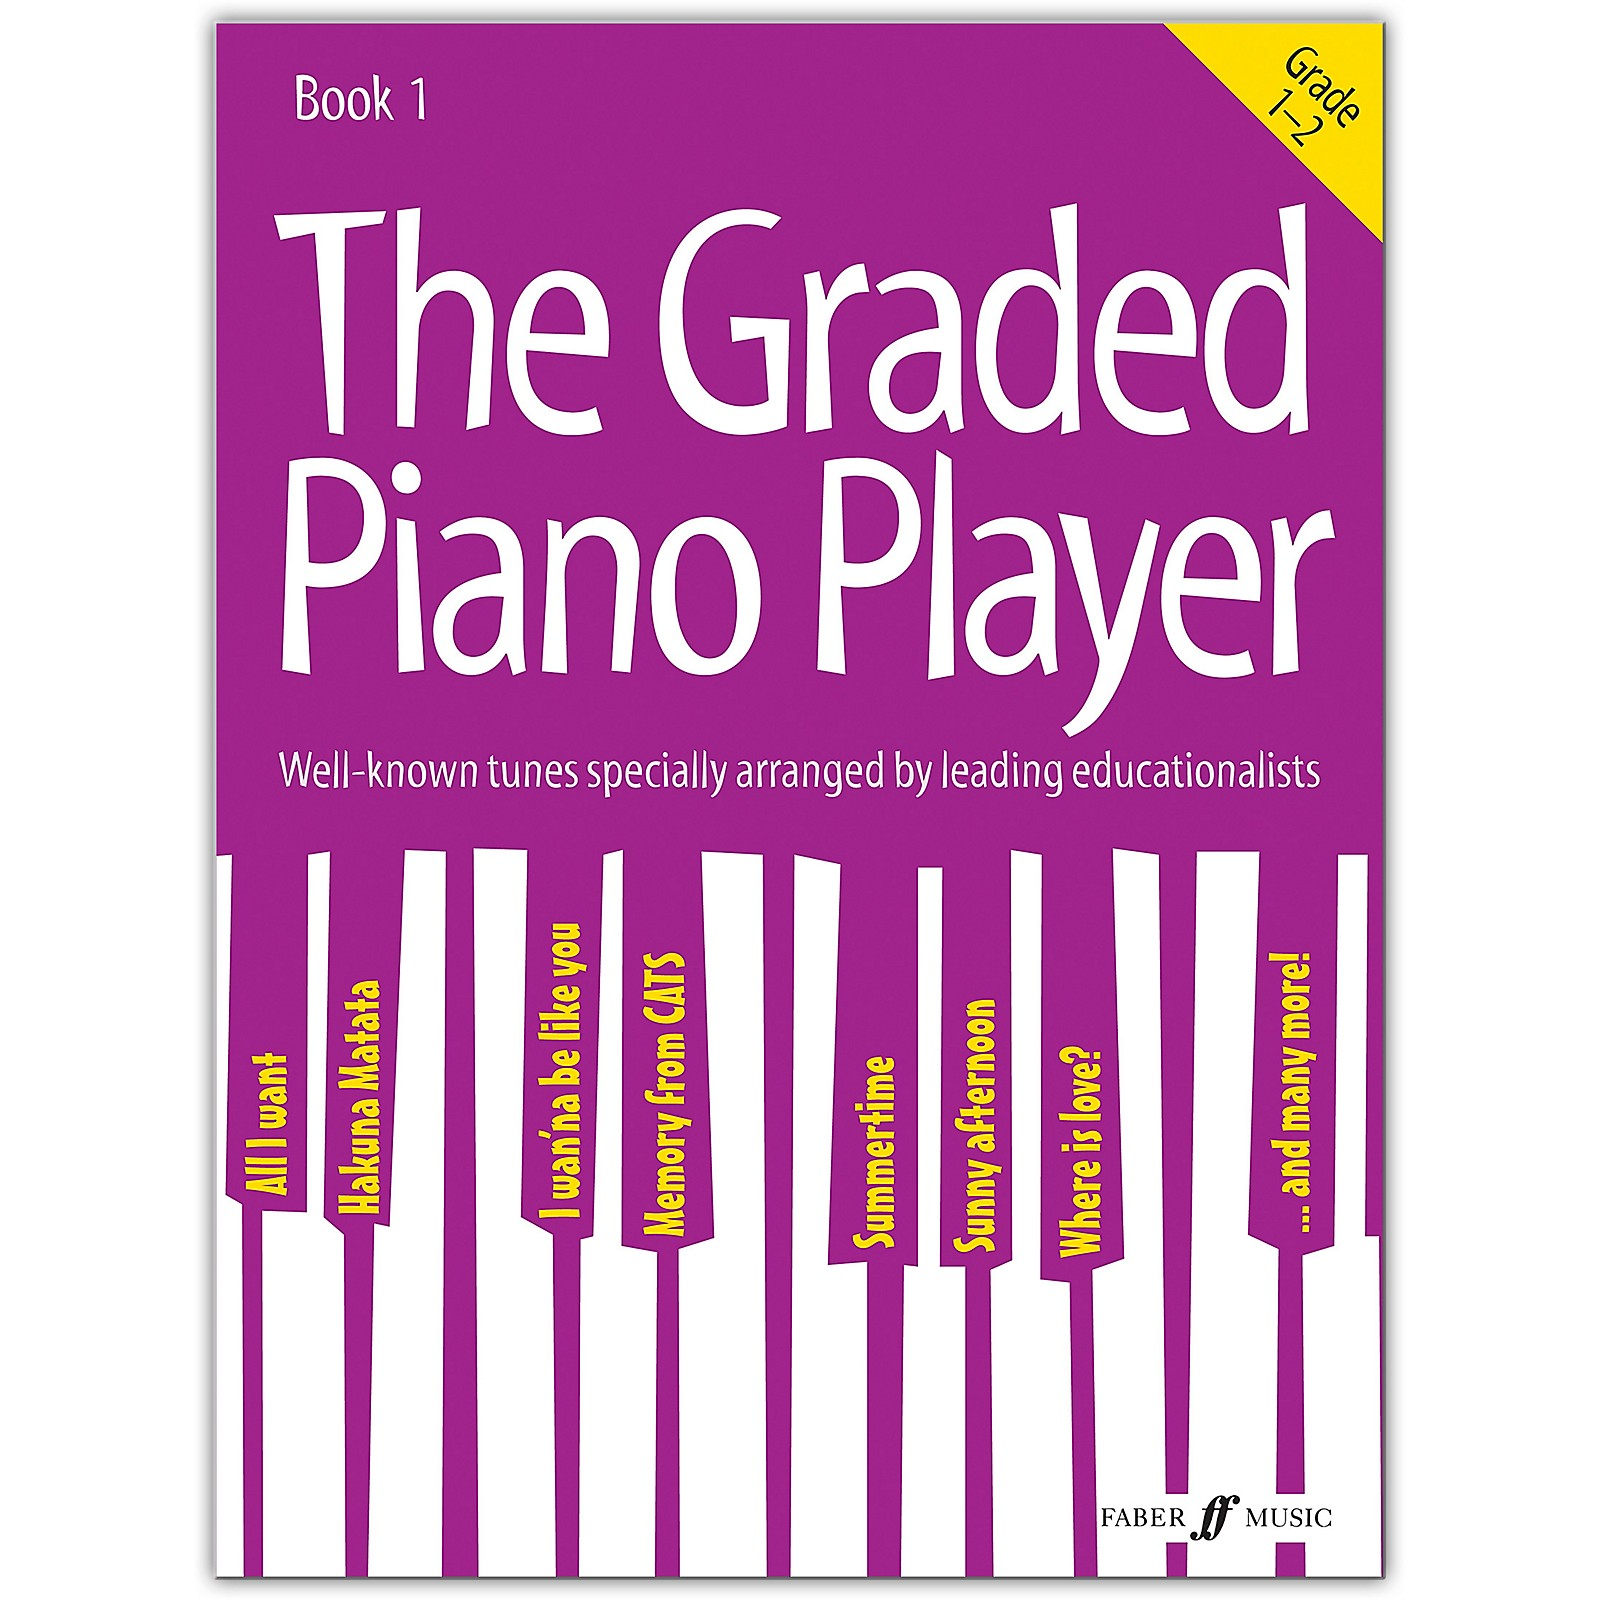 Faber Music LTD The Graded Piano Player, Book 1 (Grades 1--2)